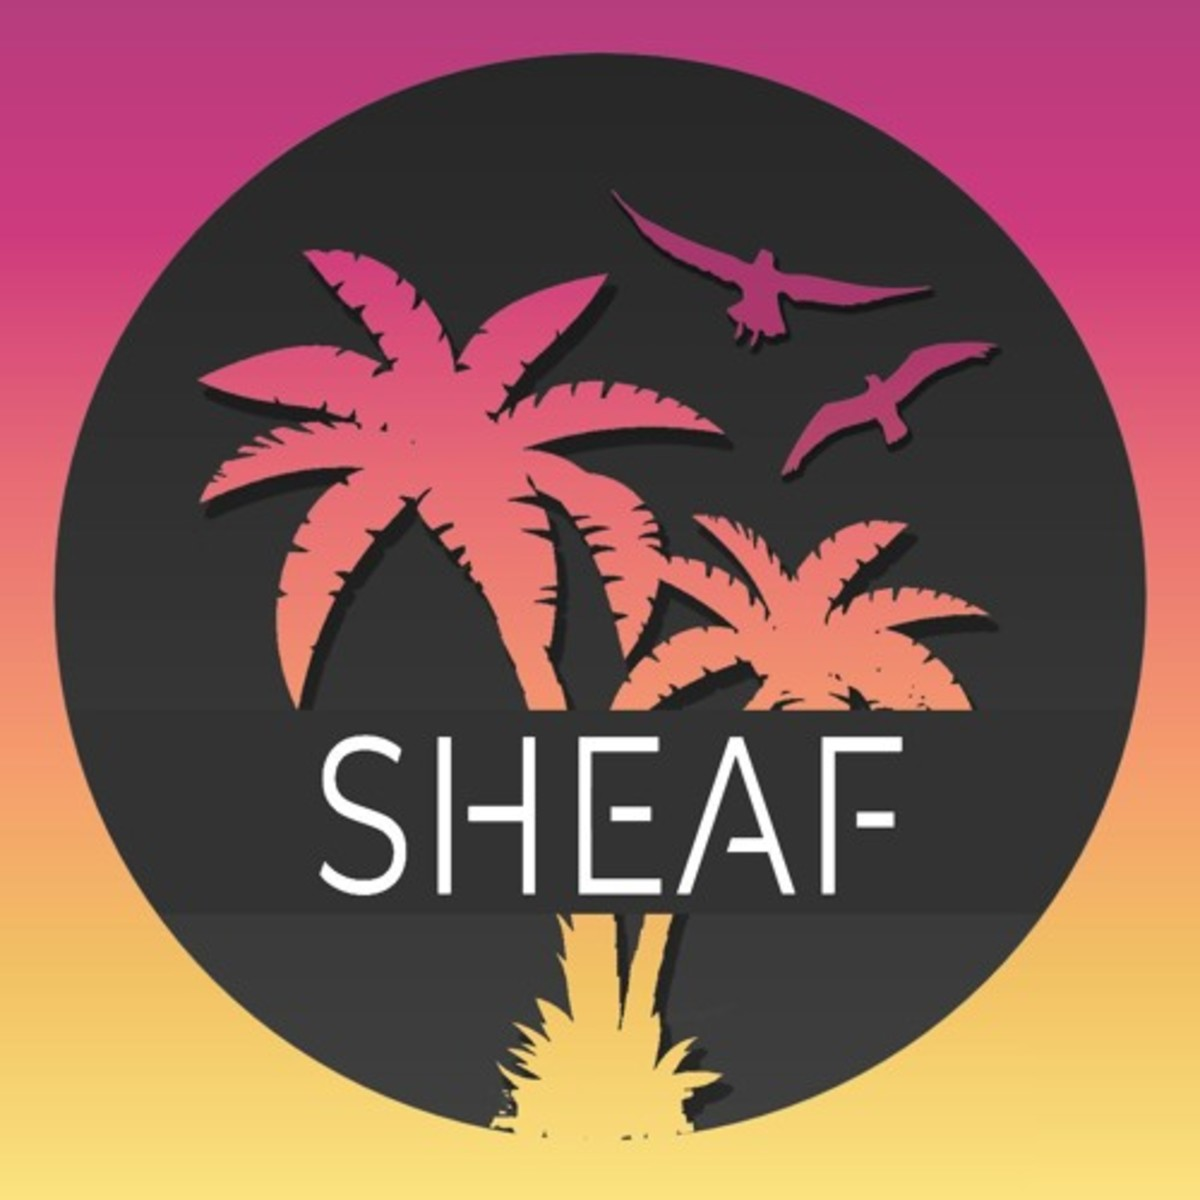 synthfam-interview-sheaf